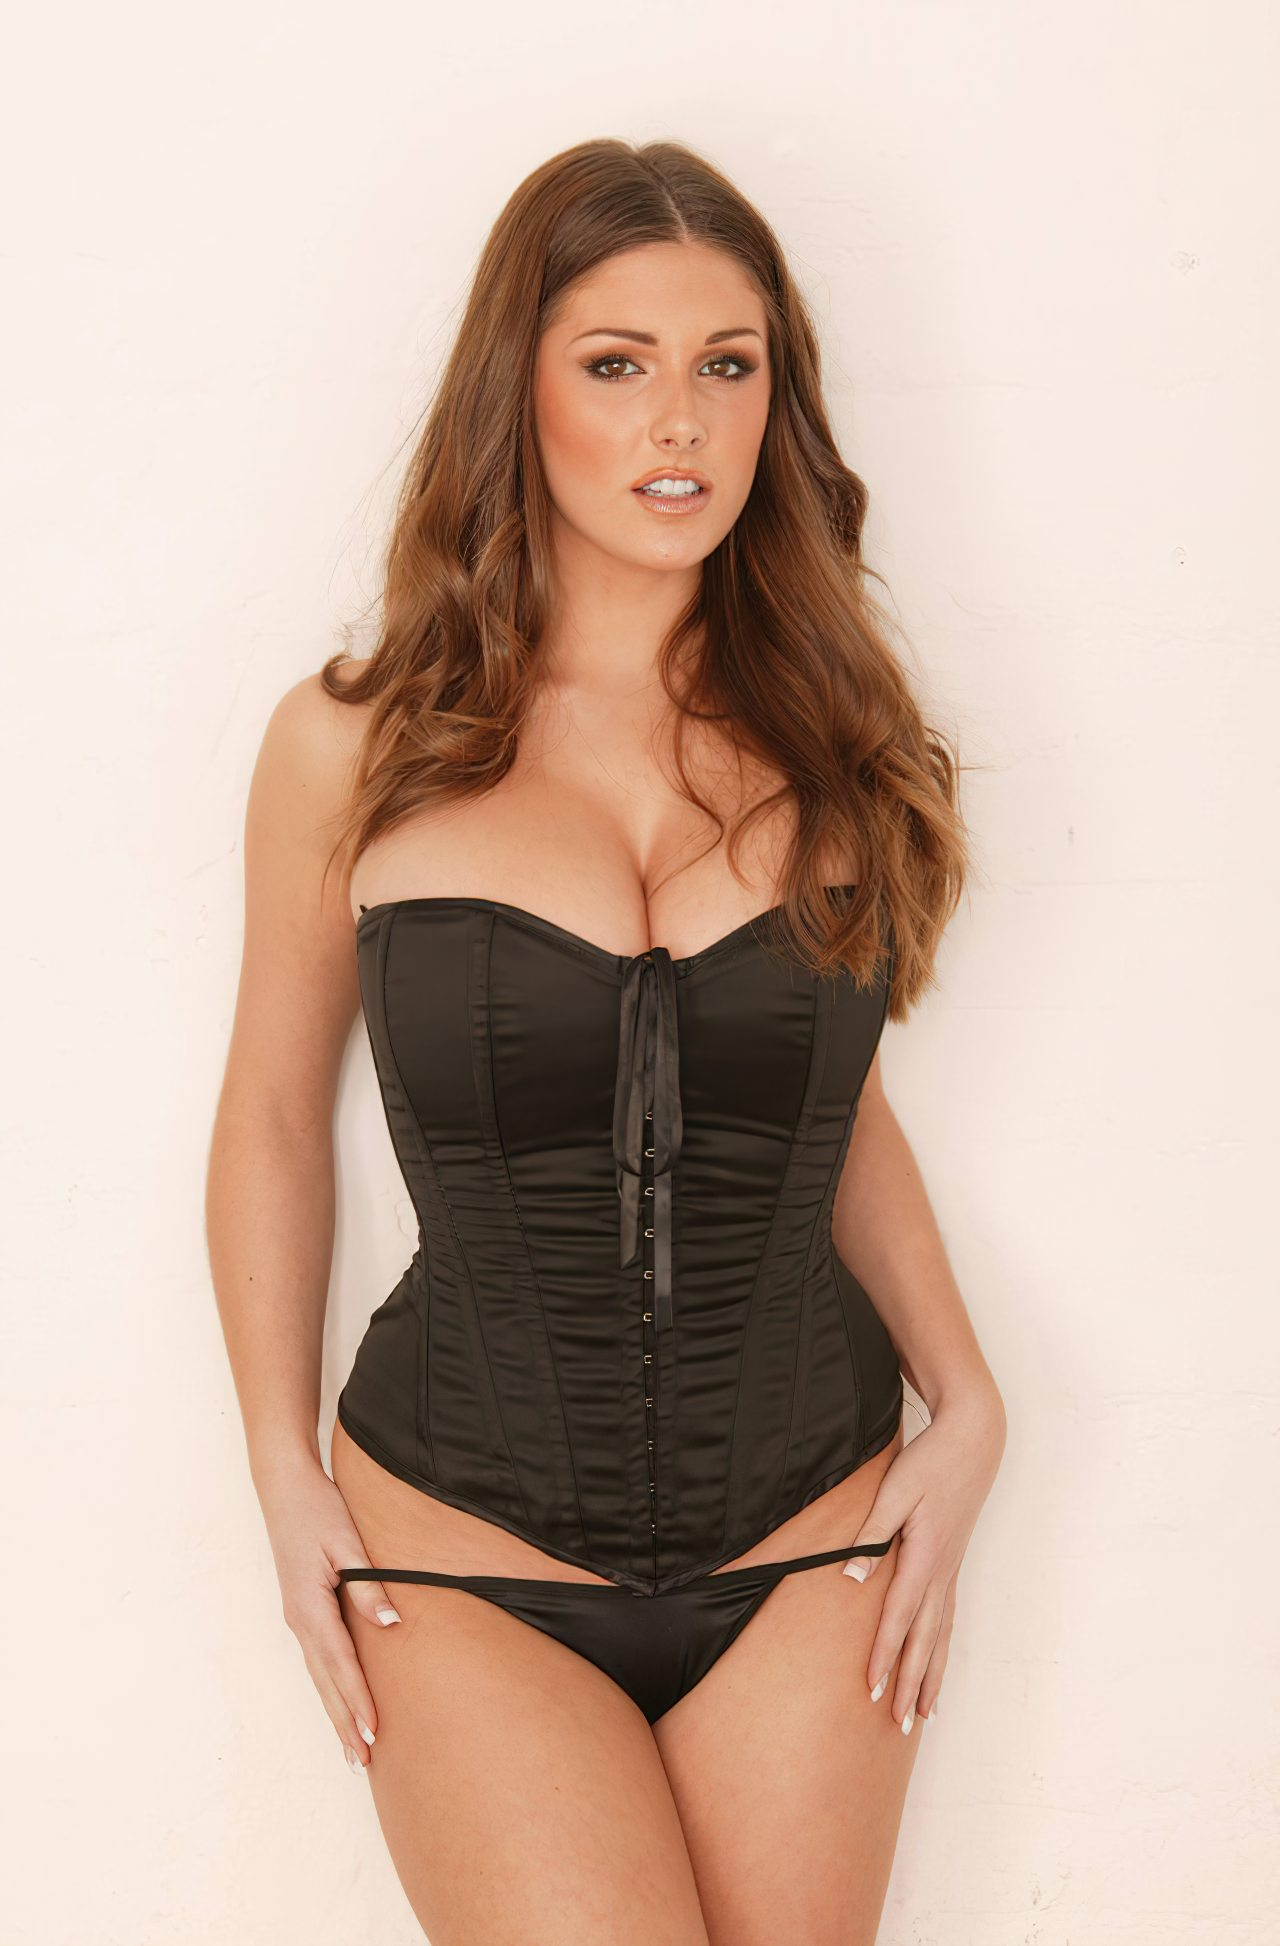 Lucy Katherine Pinder (7)